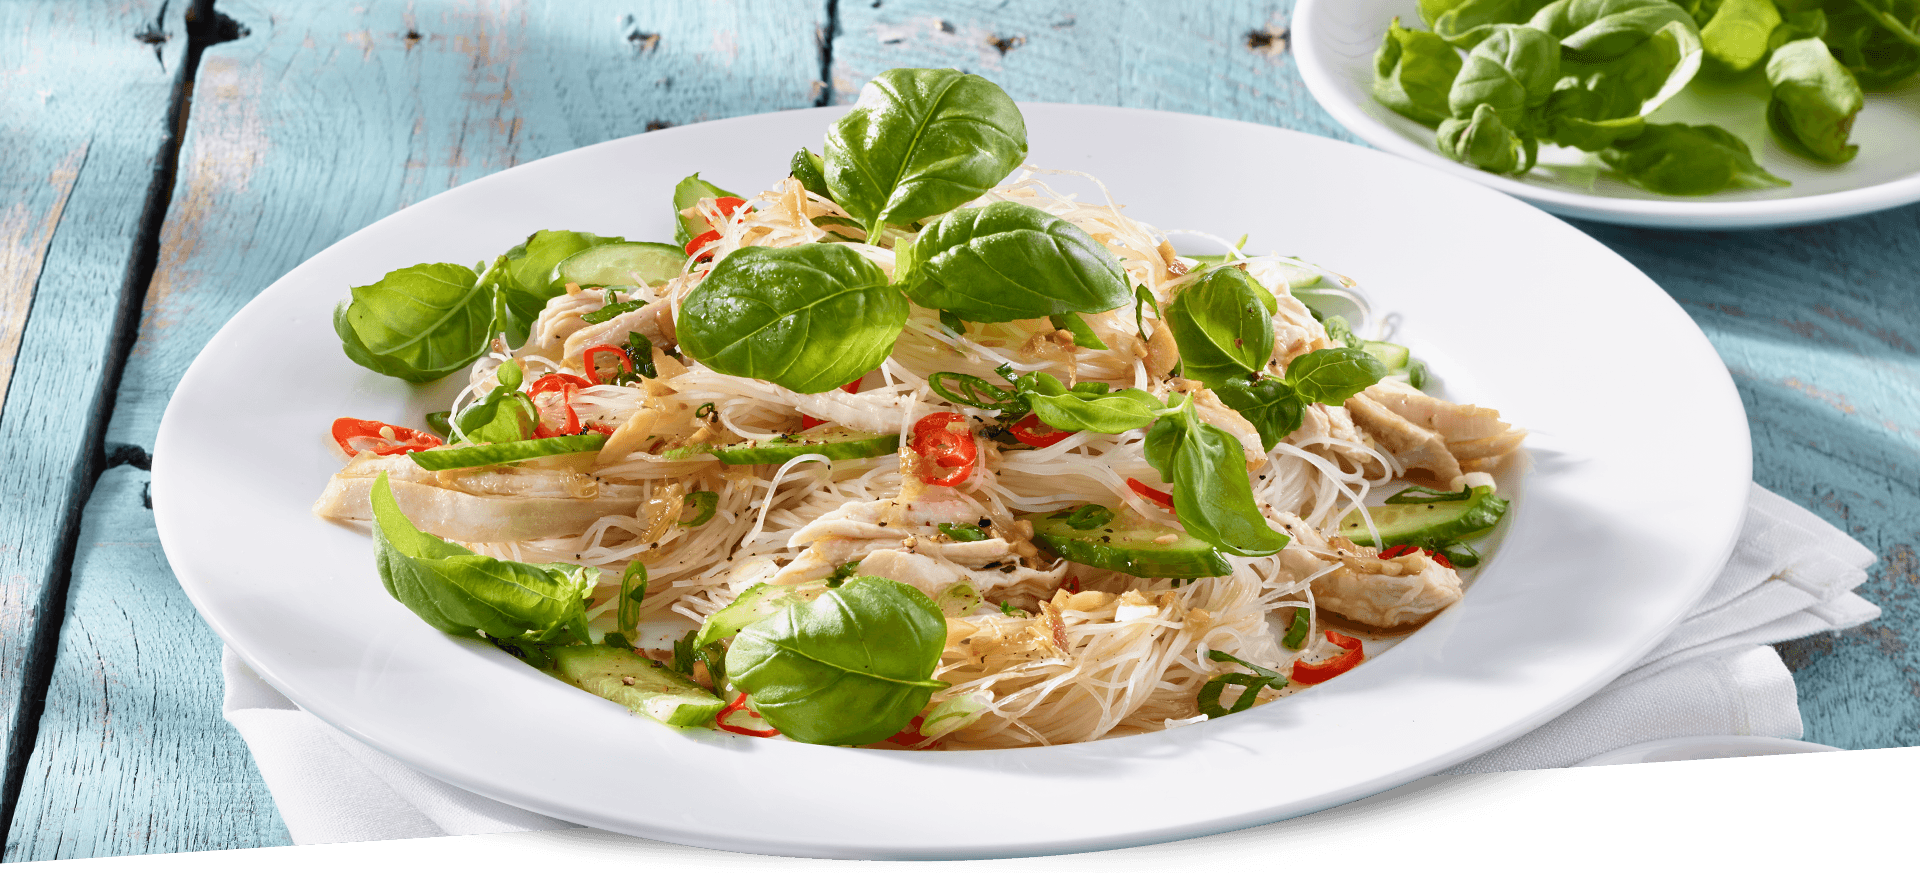 basil chicken salad header